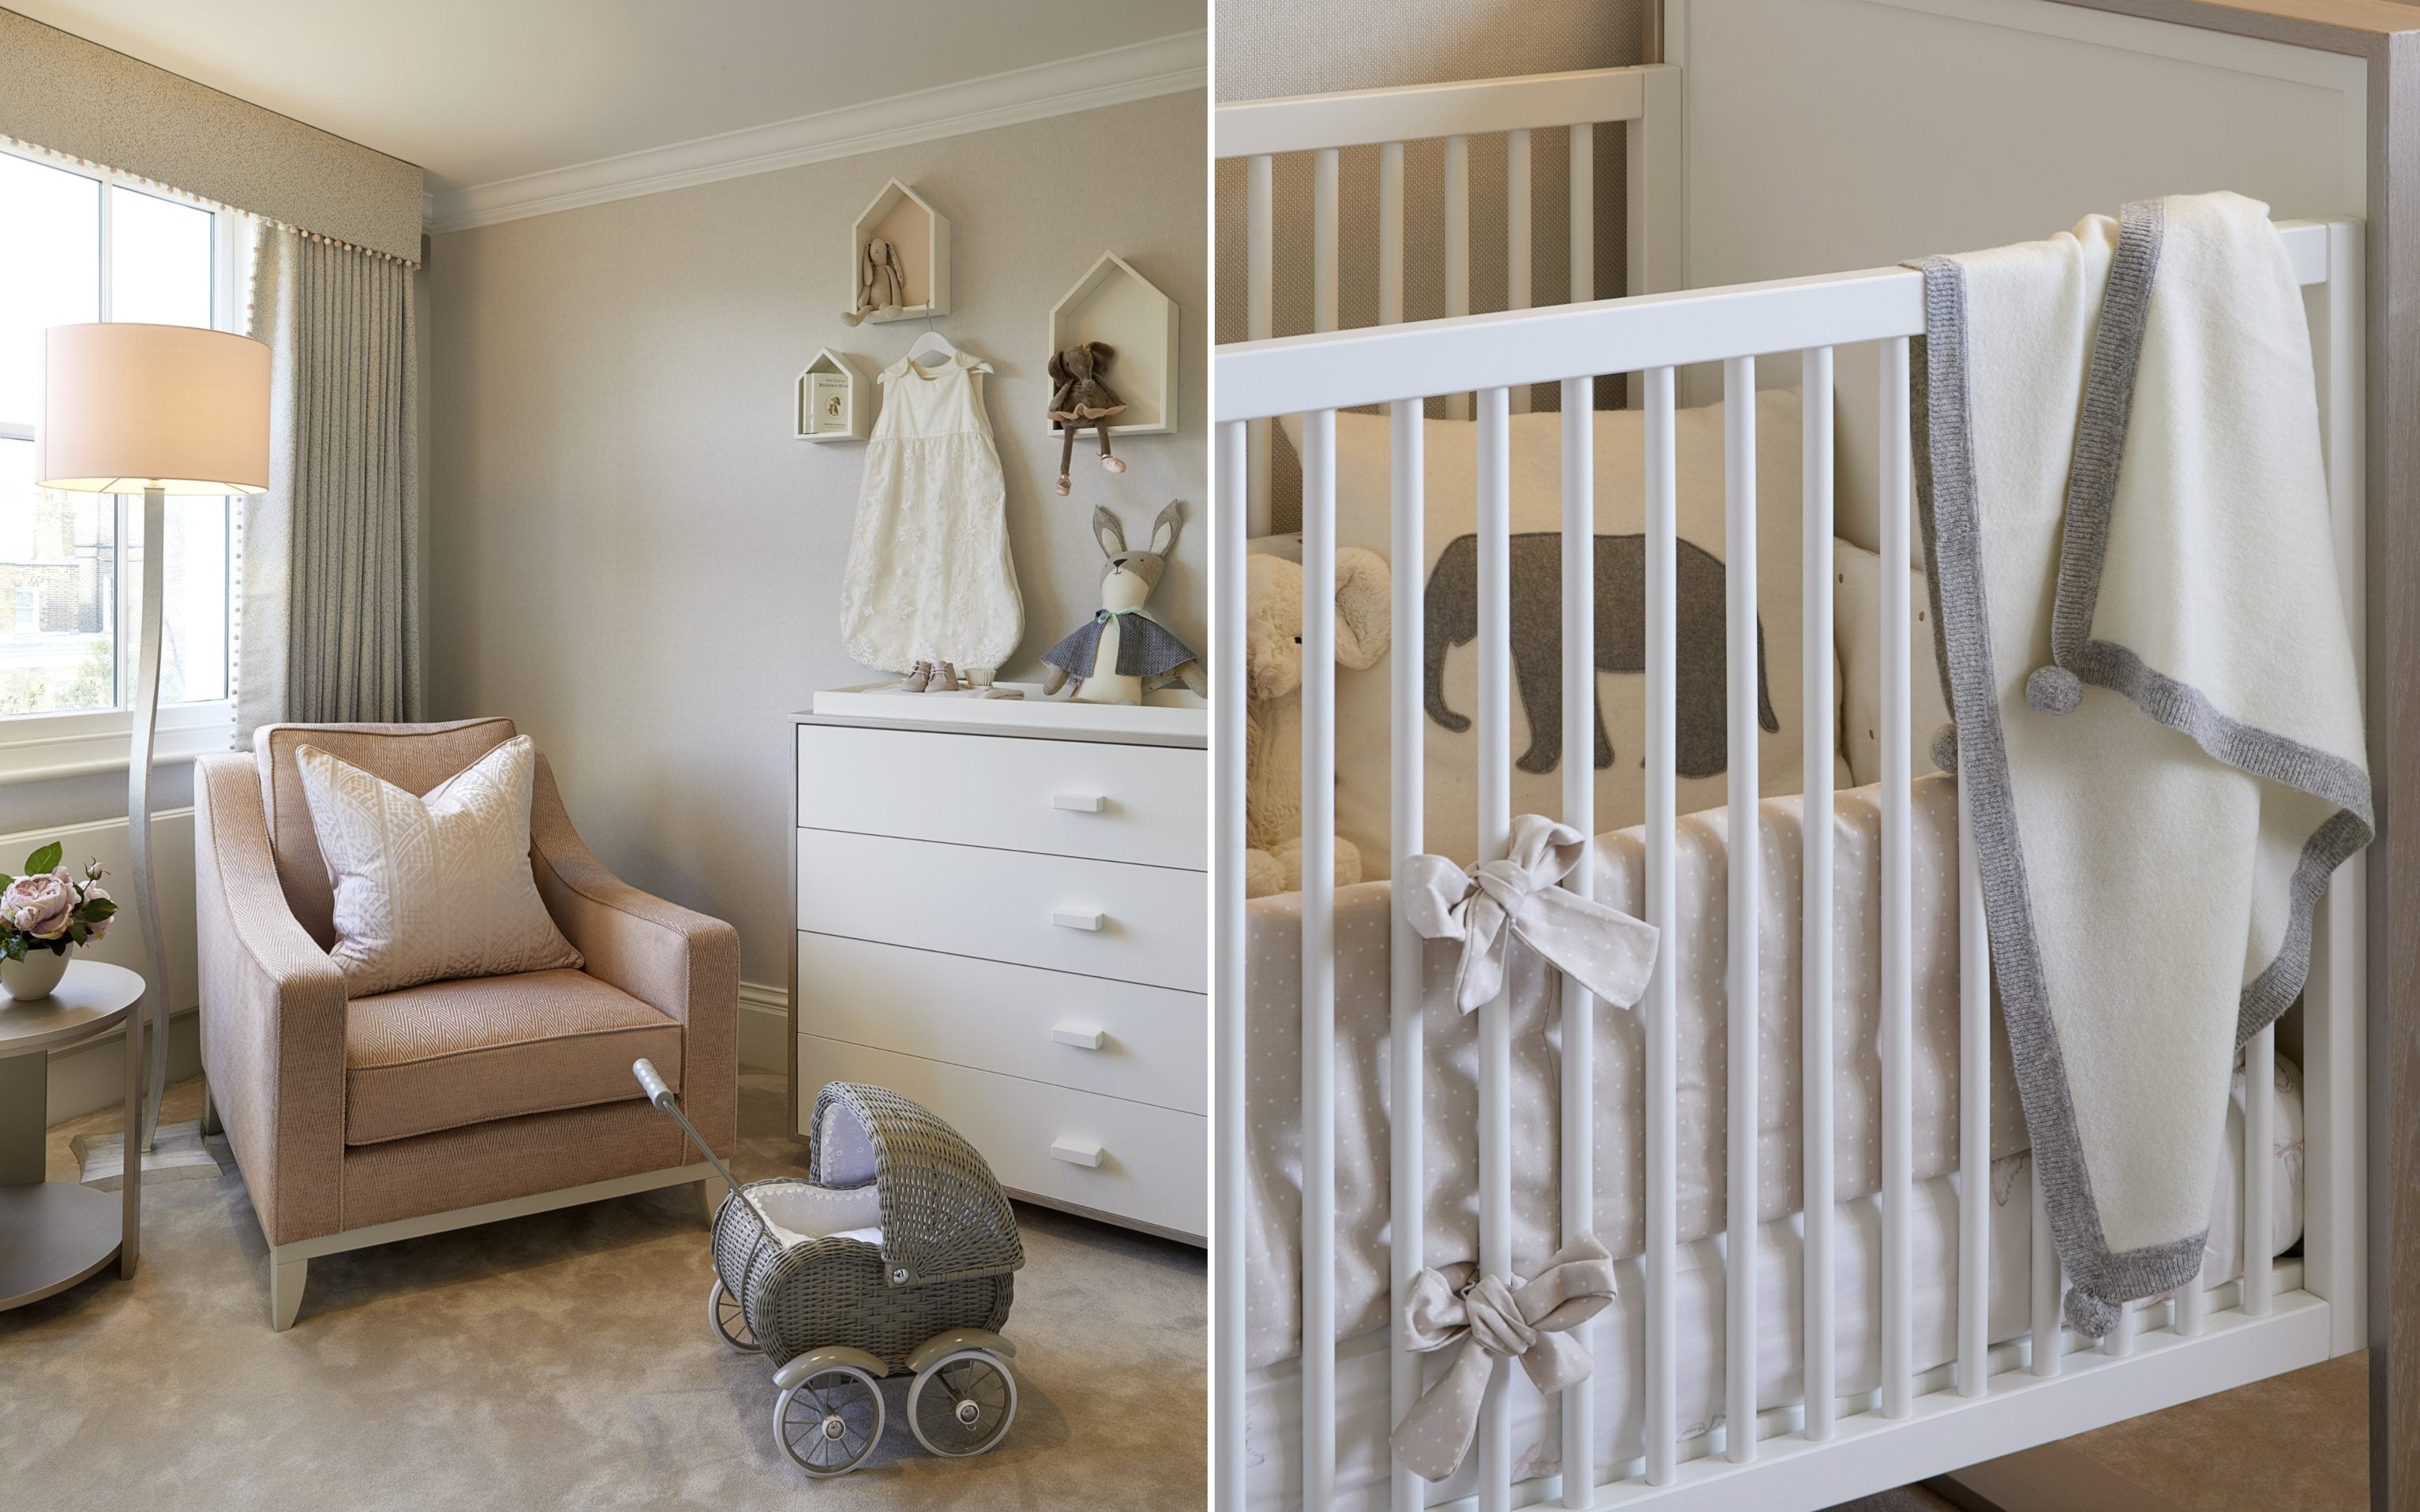 Neutral Baby Room Ideas | How To Decorate Your Nursery | LuxDeco.com